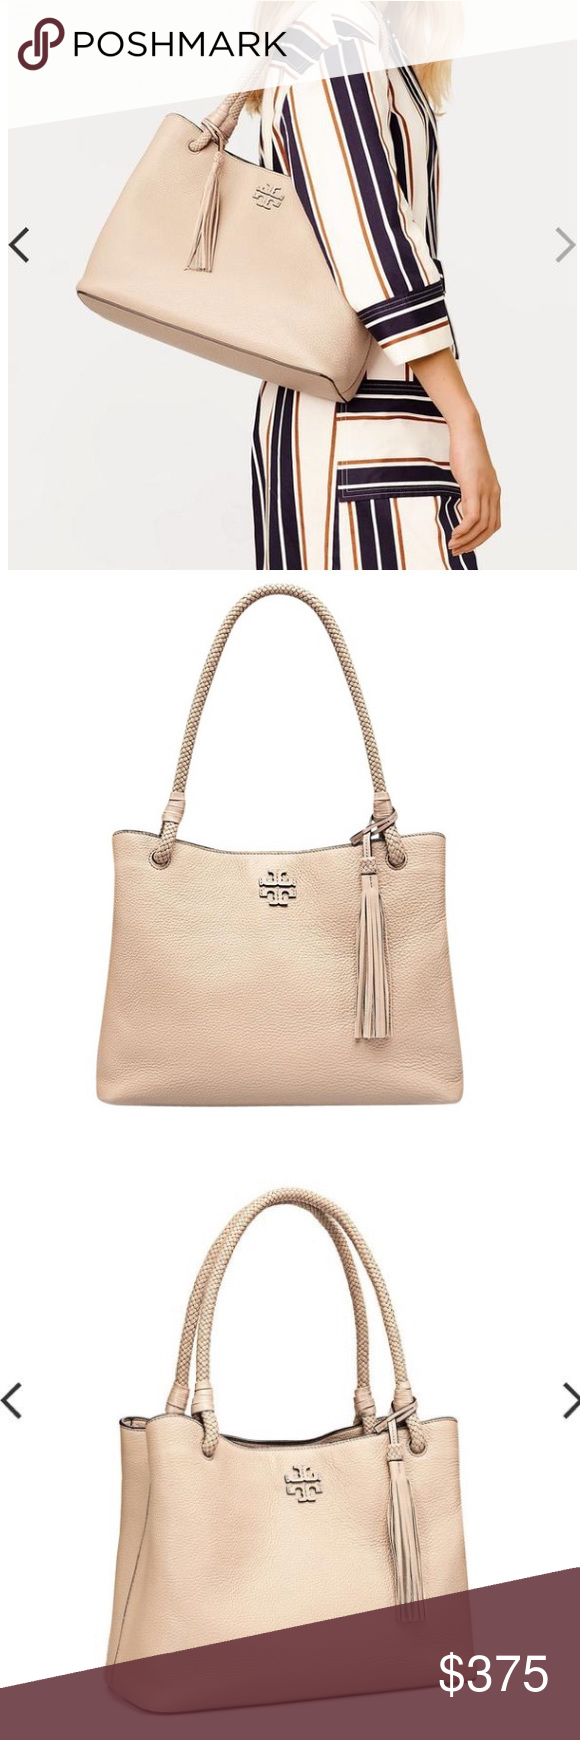 0b935525c36 ❤️RESERVED❤ Tory Burch Taylor Triple Compartment Brand new with tag and  dust bag